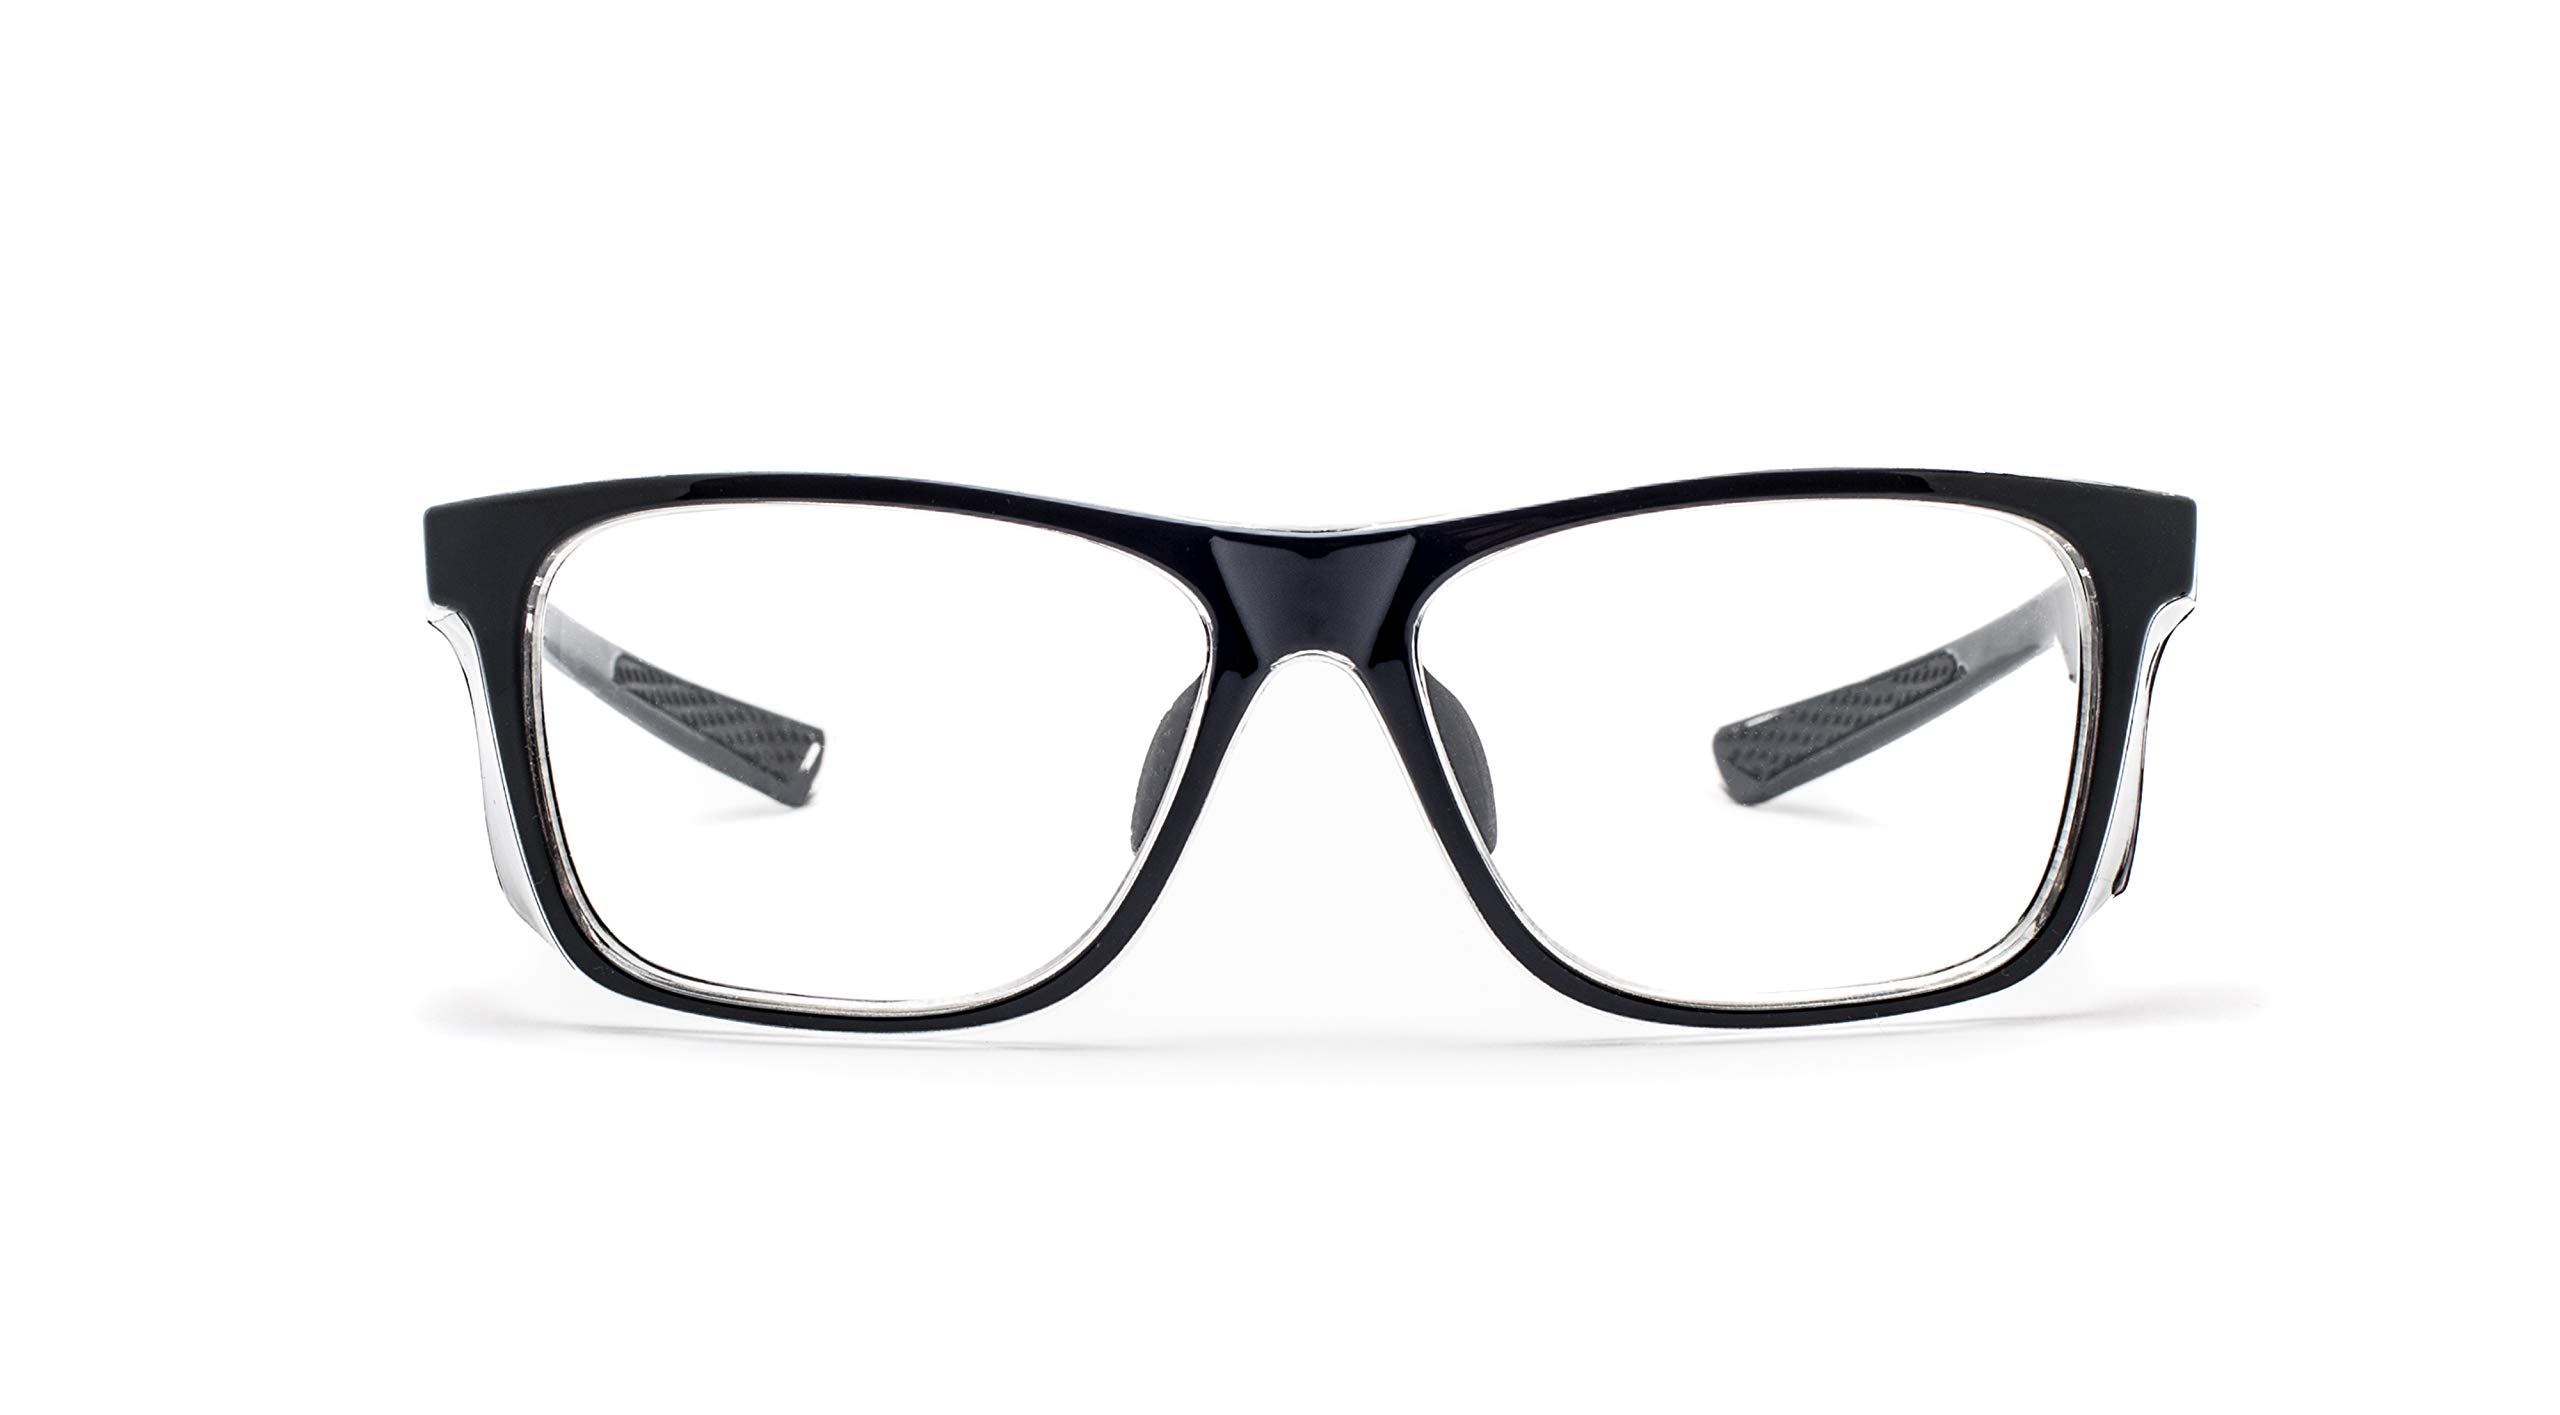 Leaded Glasses Radiation Safety Eyewear RG-15011-BK by Phillips Safety Products Inc. (Image #2)